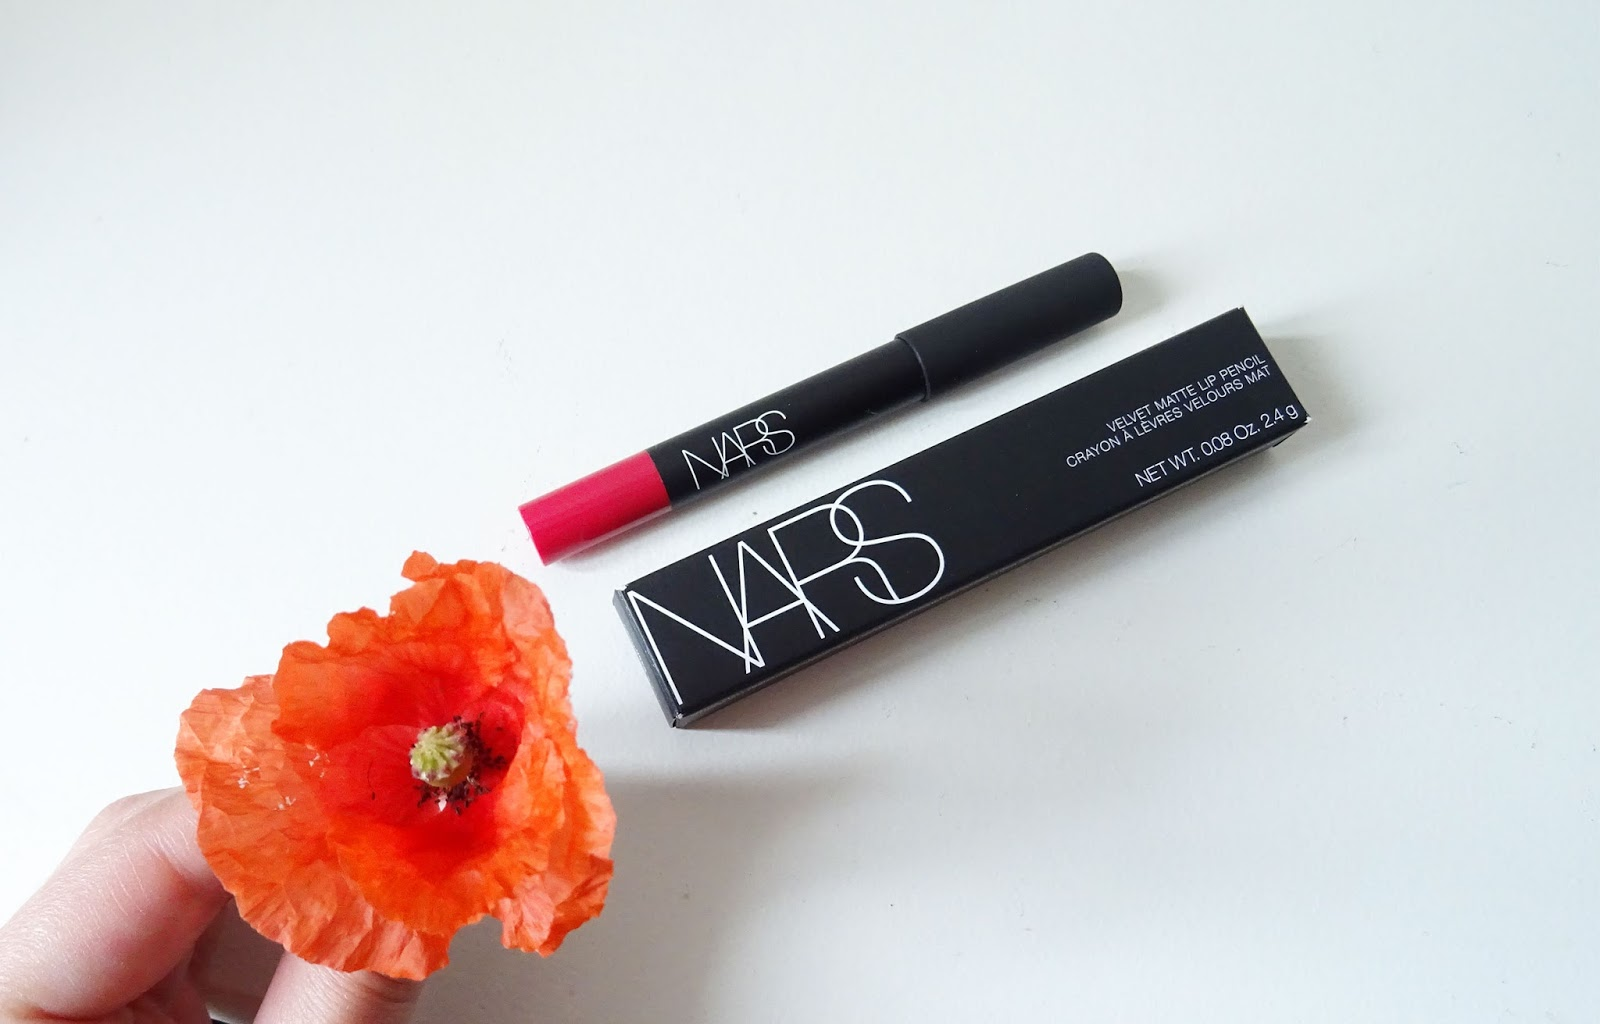 Velvet Matte Lip Pencil Nars Let's go crazy